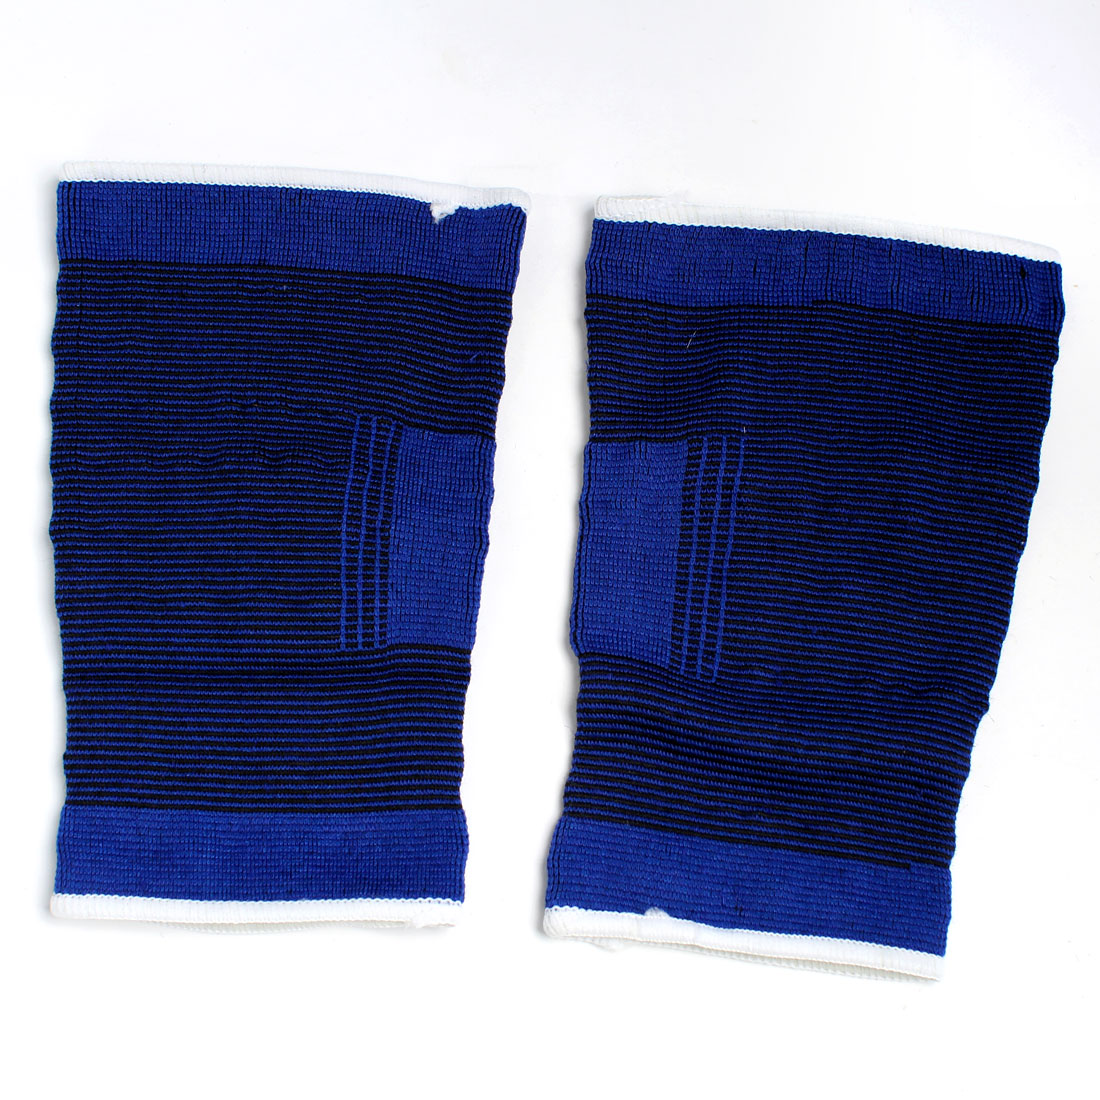 2 X Blue Elastic Stretchy Cotton Blend Band Sports Knee Protector